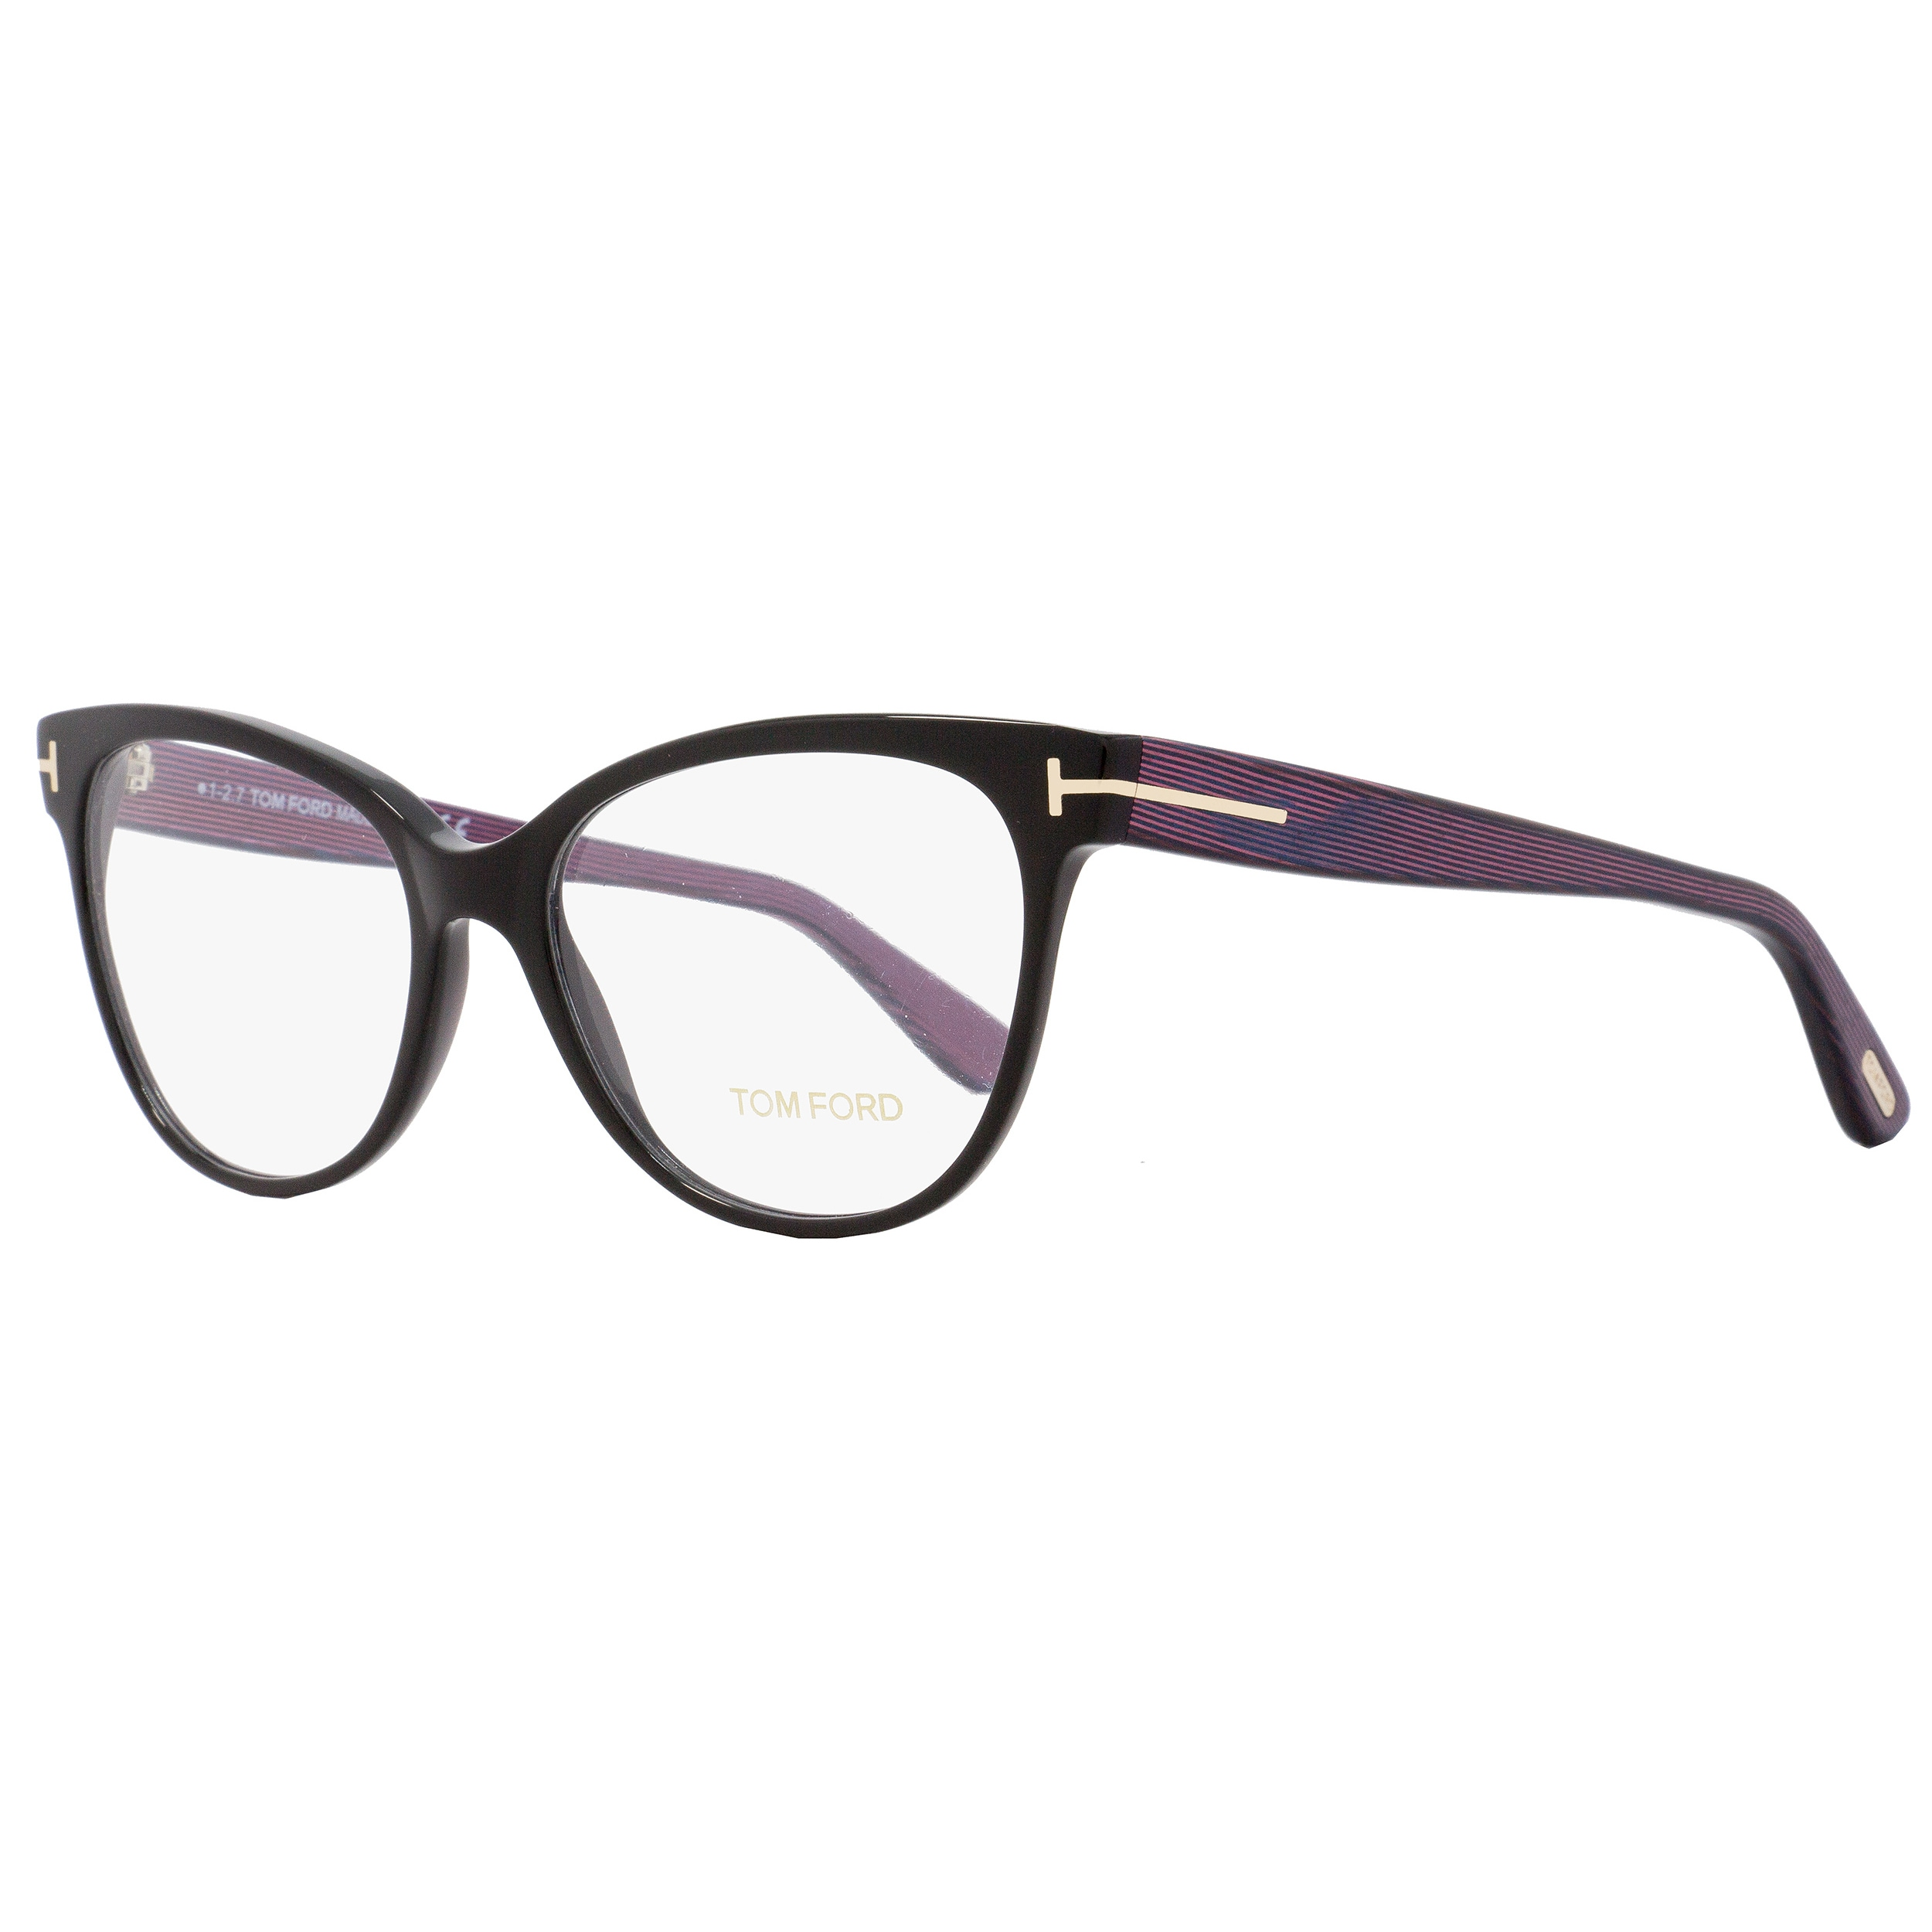 de04a0334e4 Shop Tom Ford TF5291 005 Womens Black Iridescent Chalkstripe 55 mm  Eyeglasses - Free Shipping Today - Overstock - 18778813